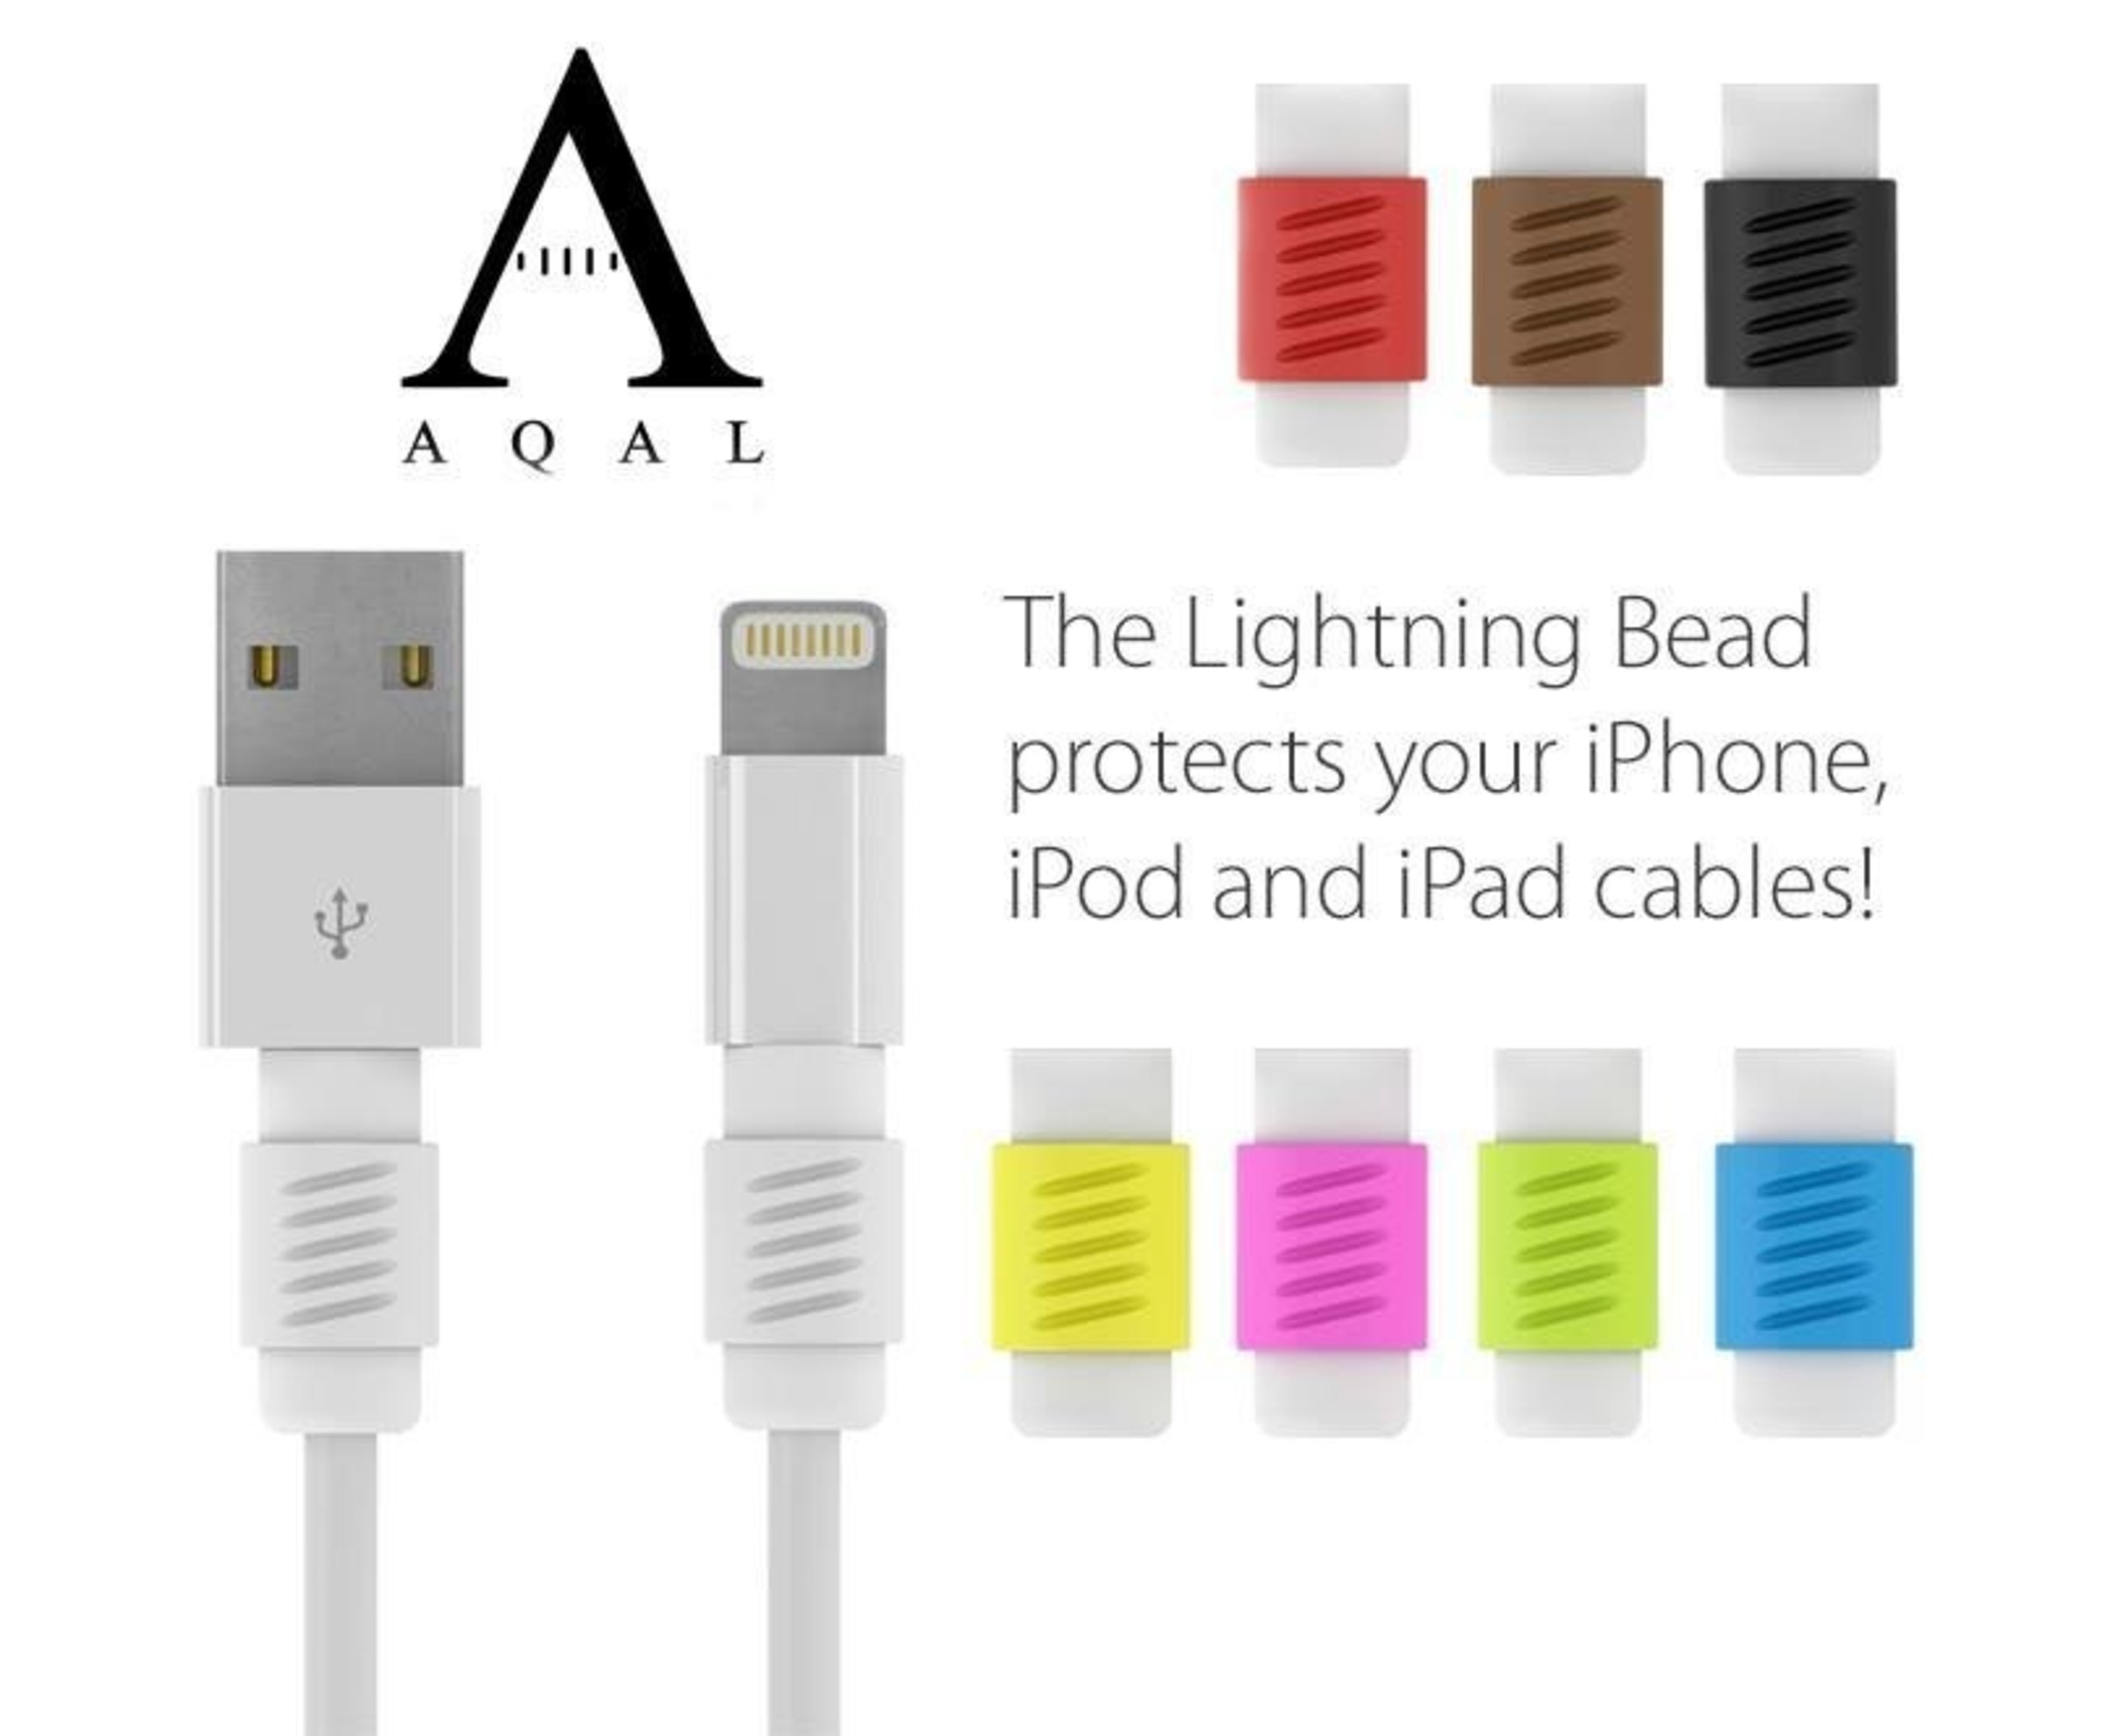 The Bead Offers Huge Protection for Lightning and MagSafe Cables at a Miniscule Cost